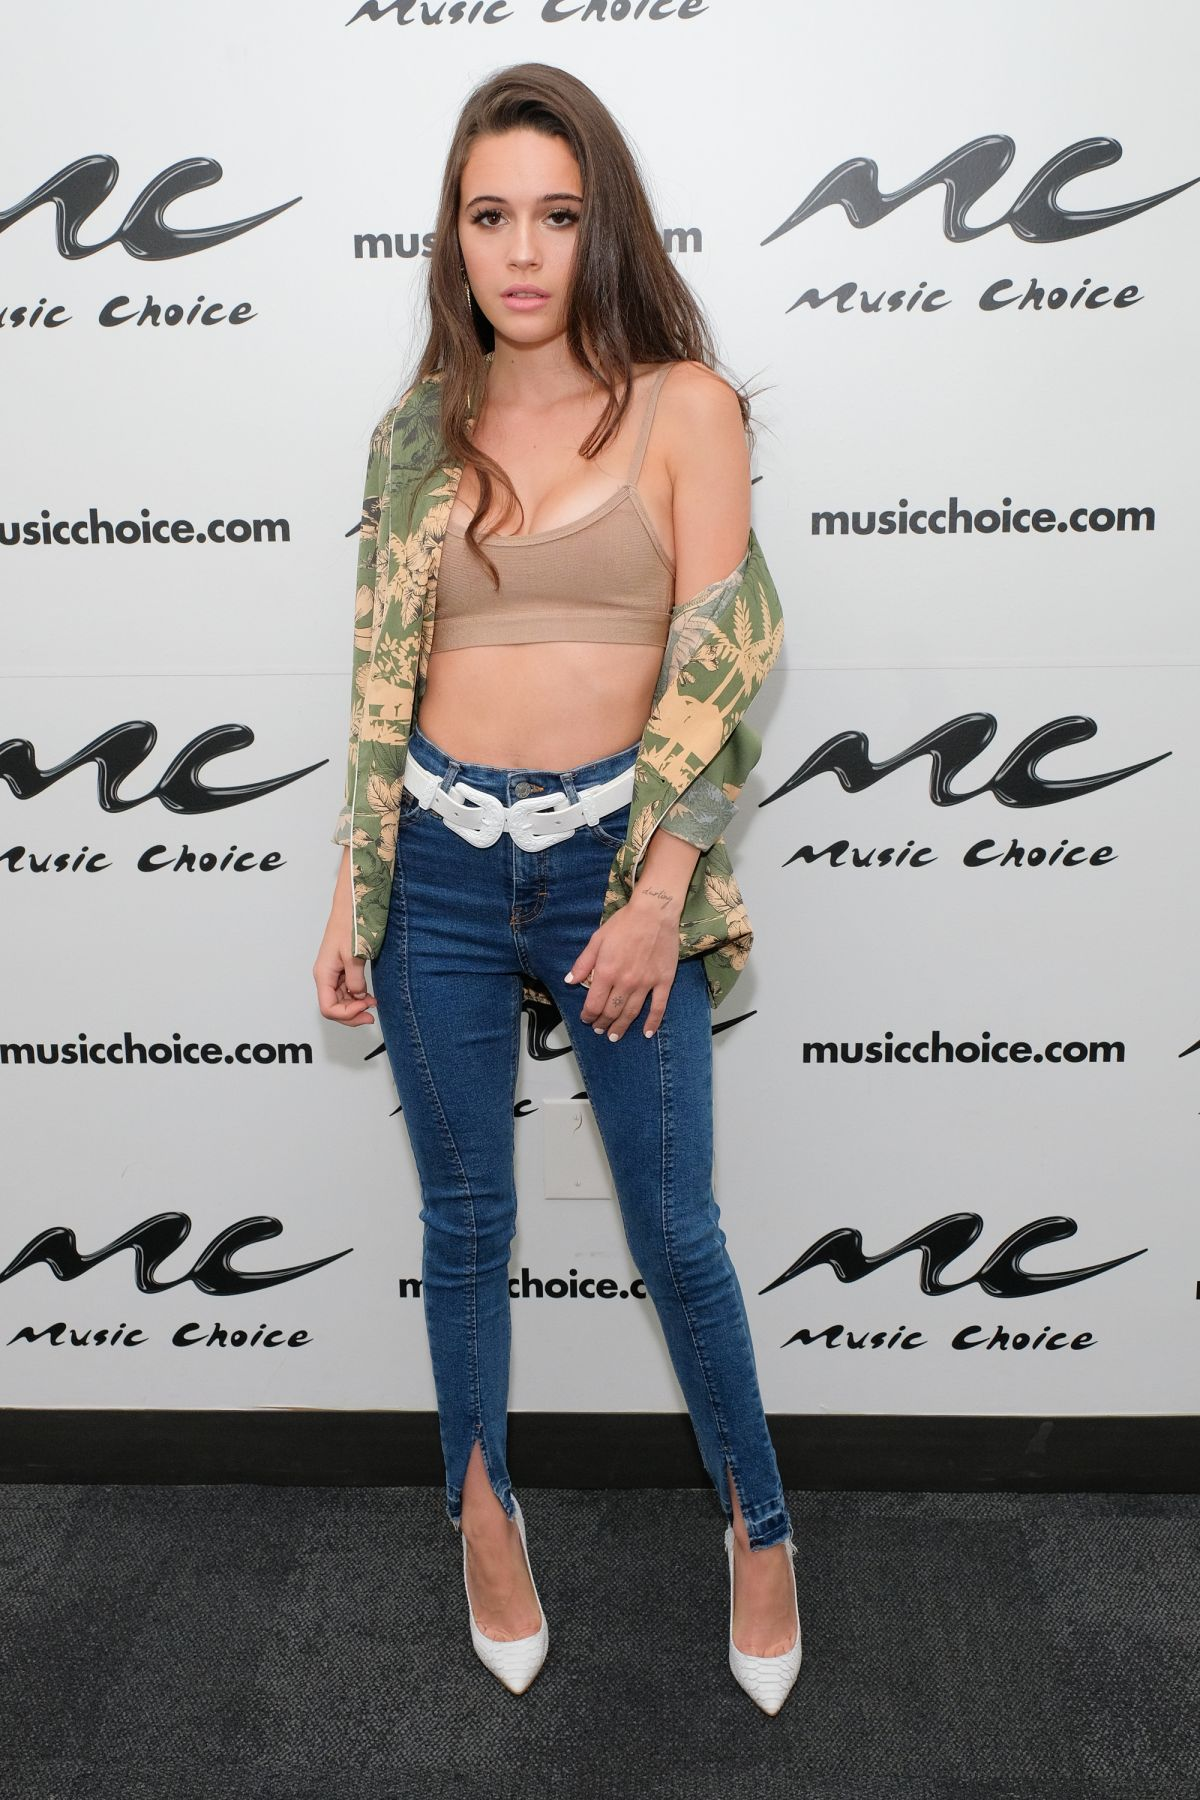 Bea miller at music choice in new york 06 21 2018 hawtcelebs - Bea miller wallpaper ...